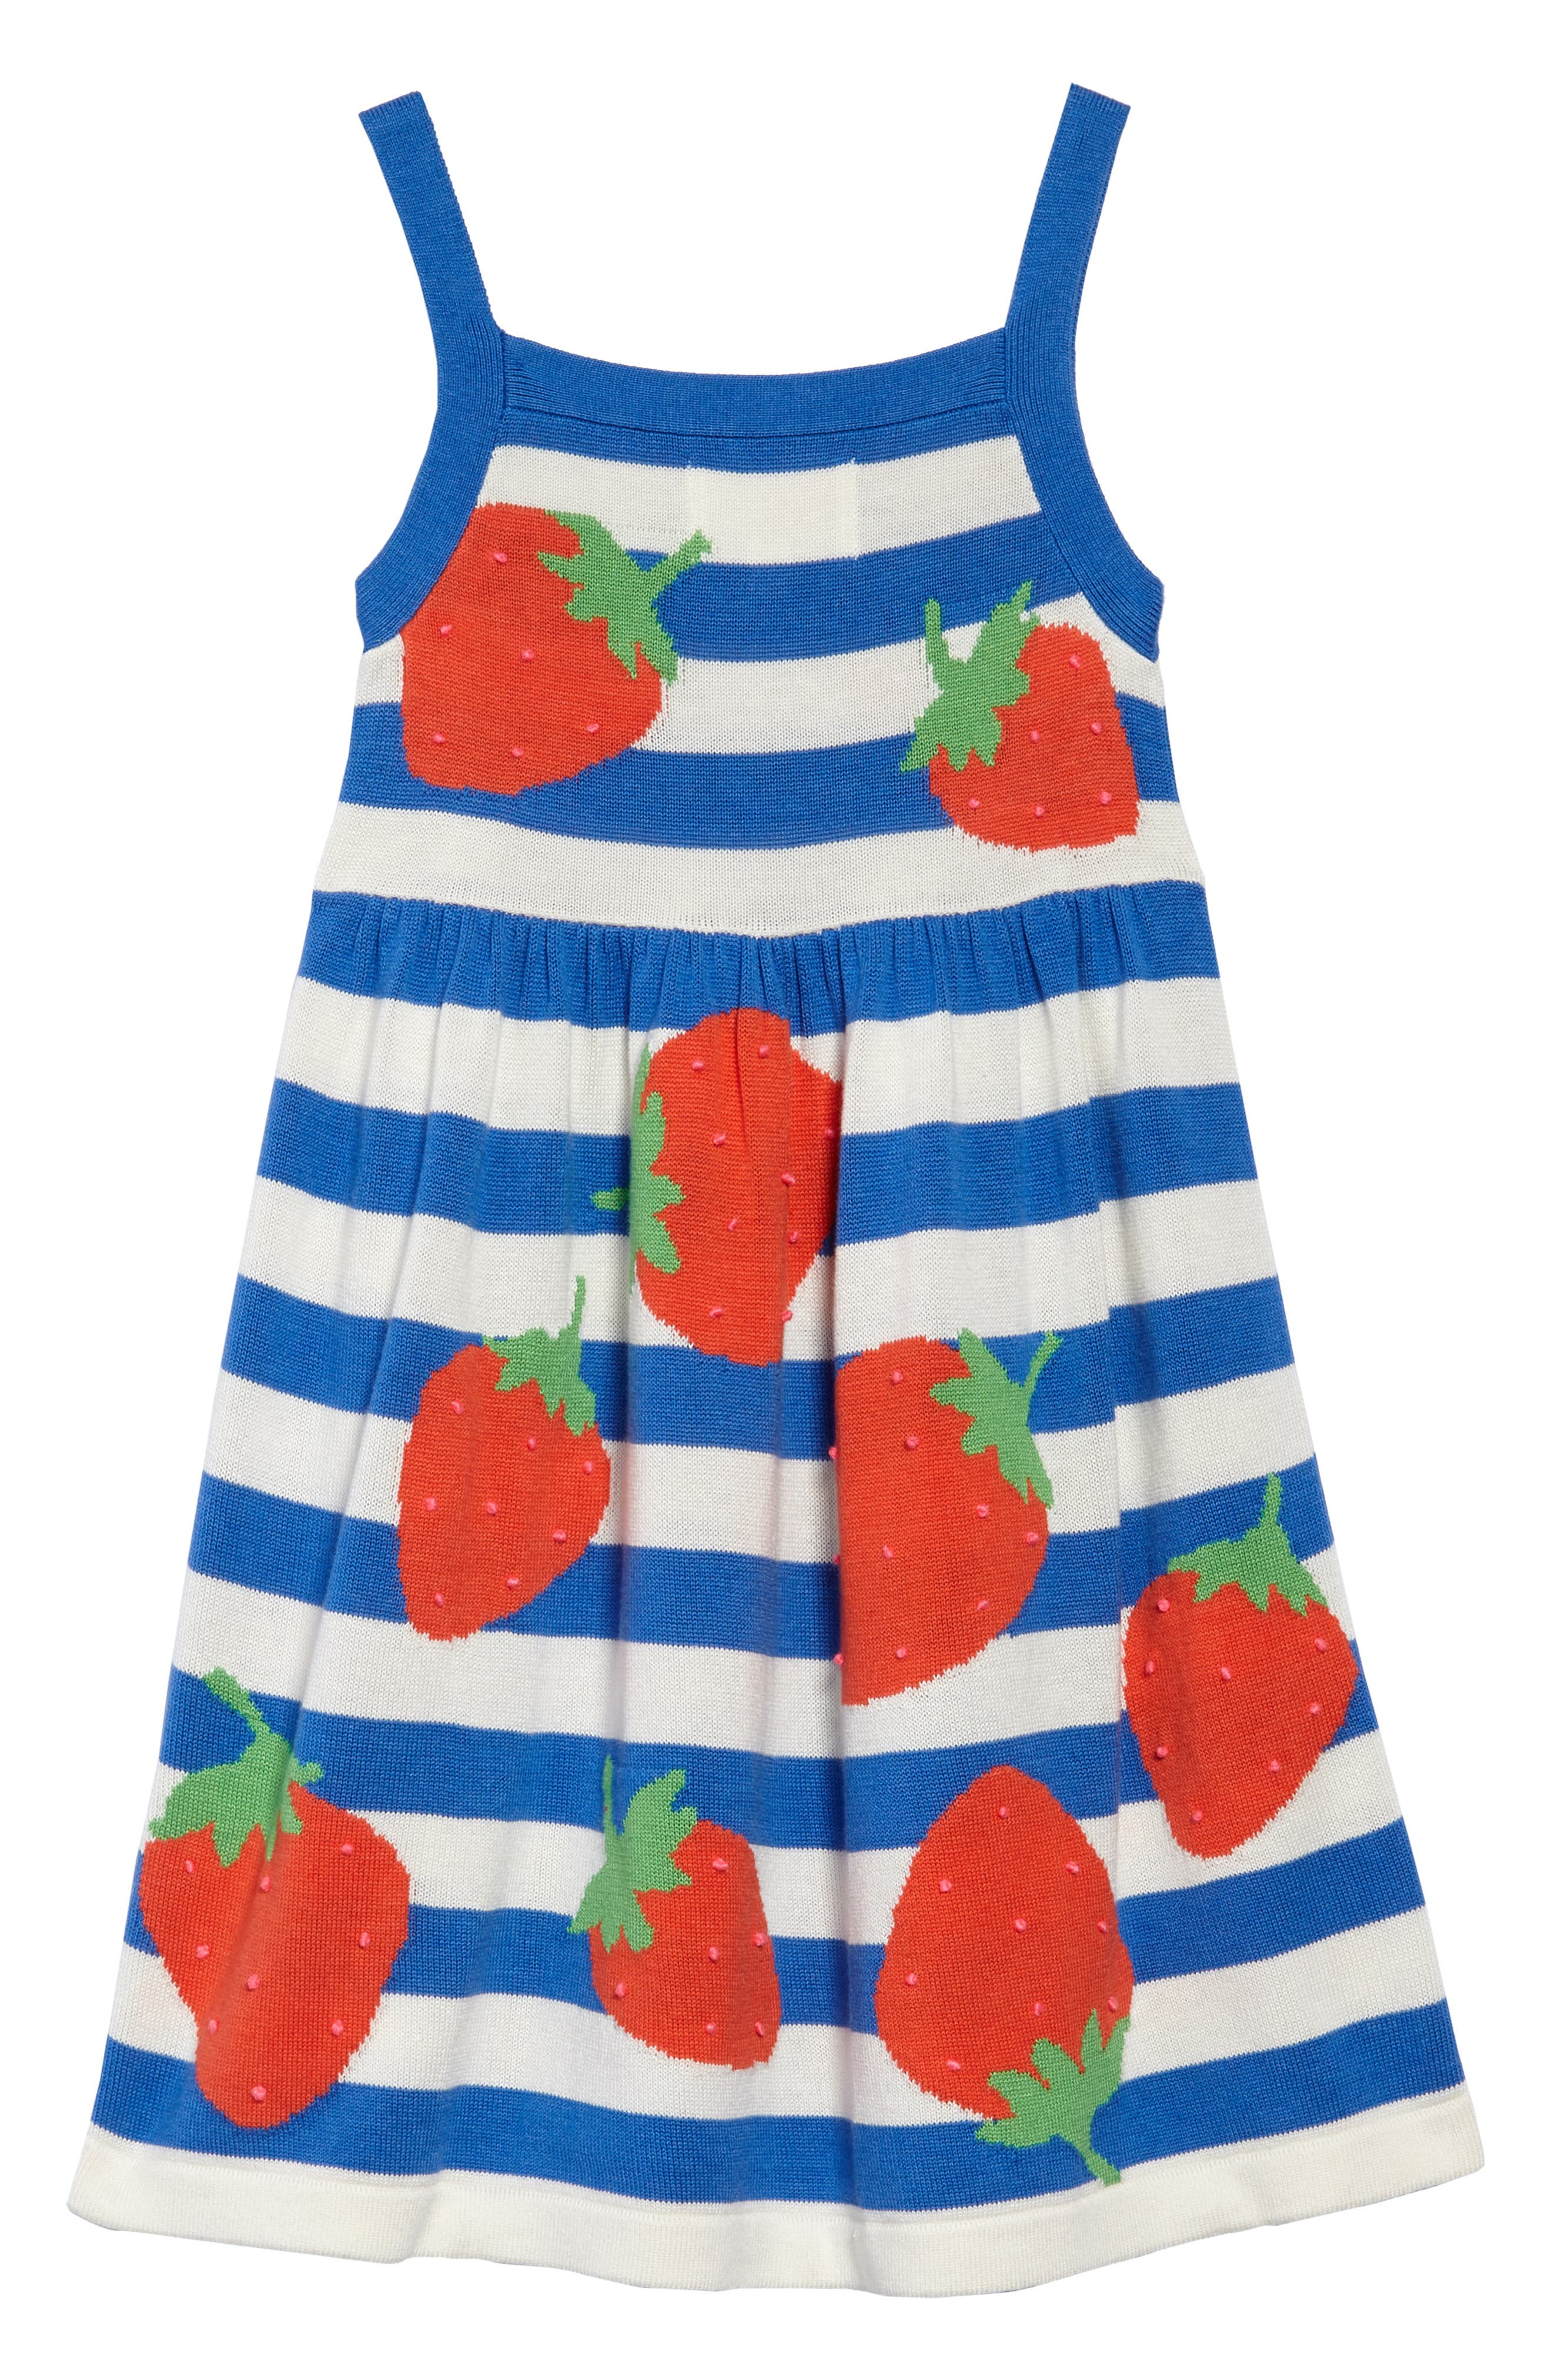 Fruity Summer Dress,                             Alternate thumbnail 2, color,                             424